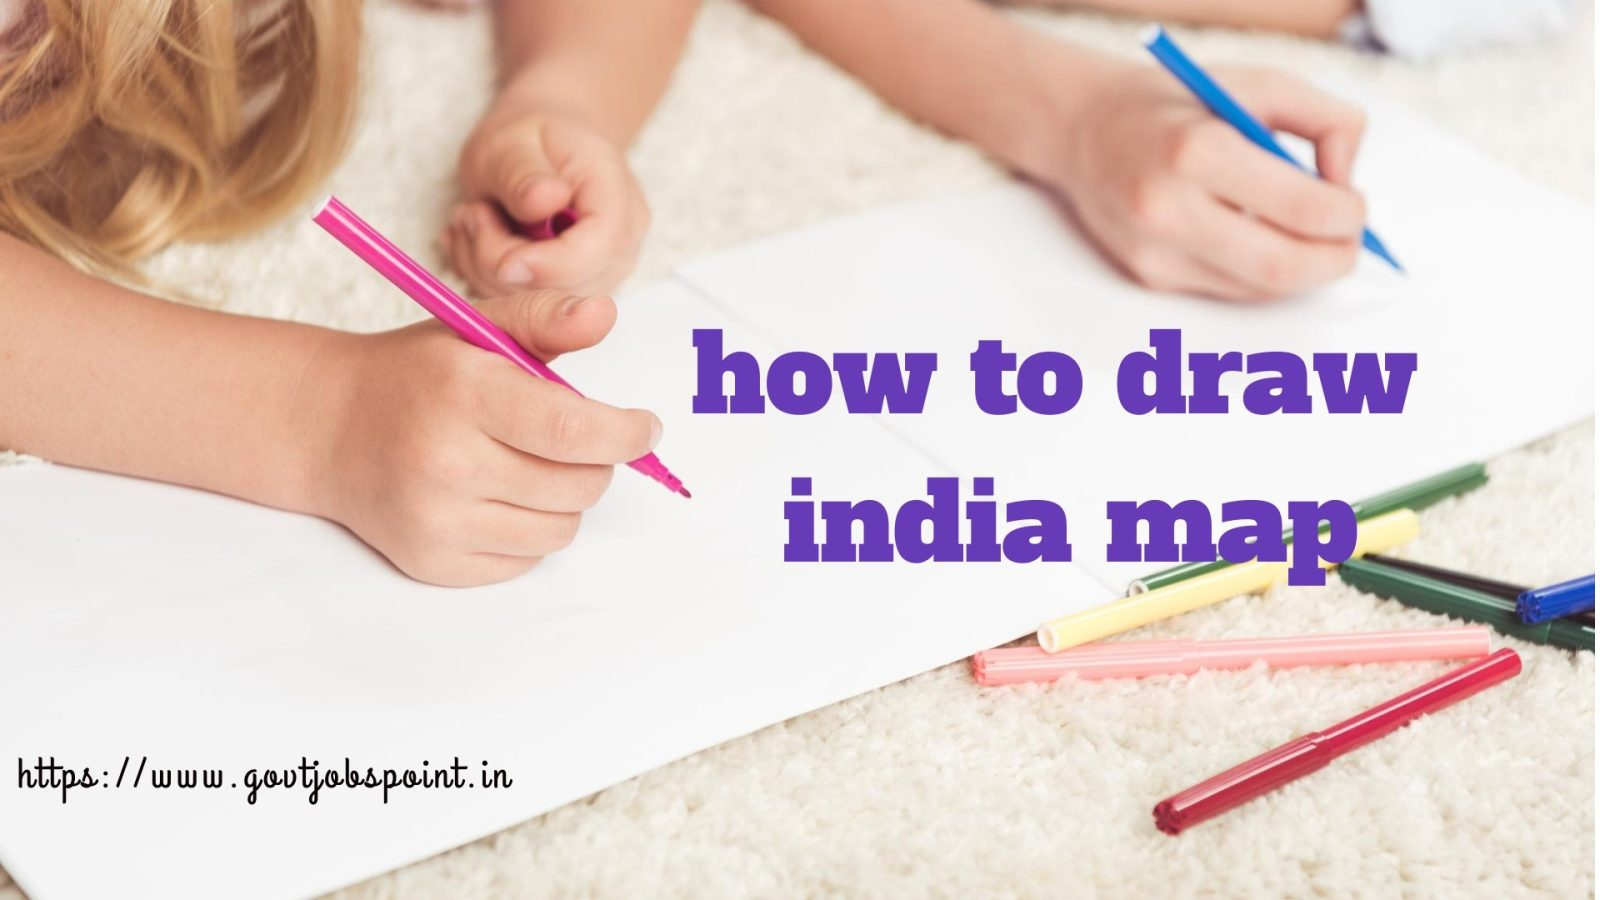 how to draw india map